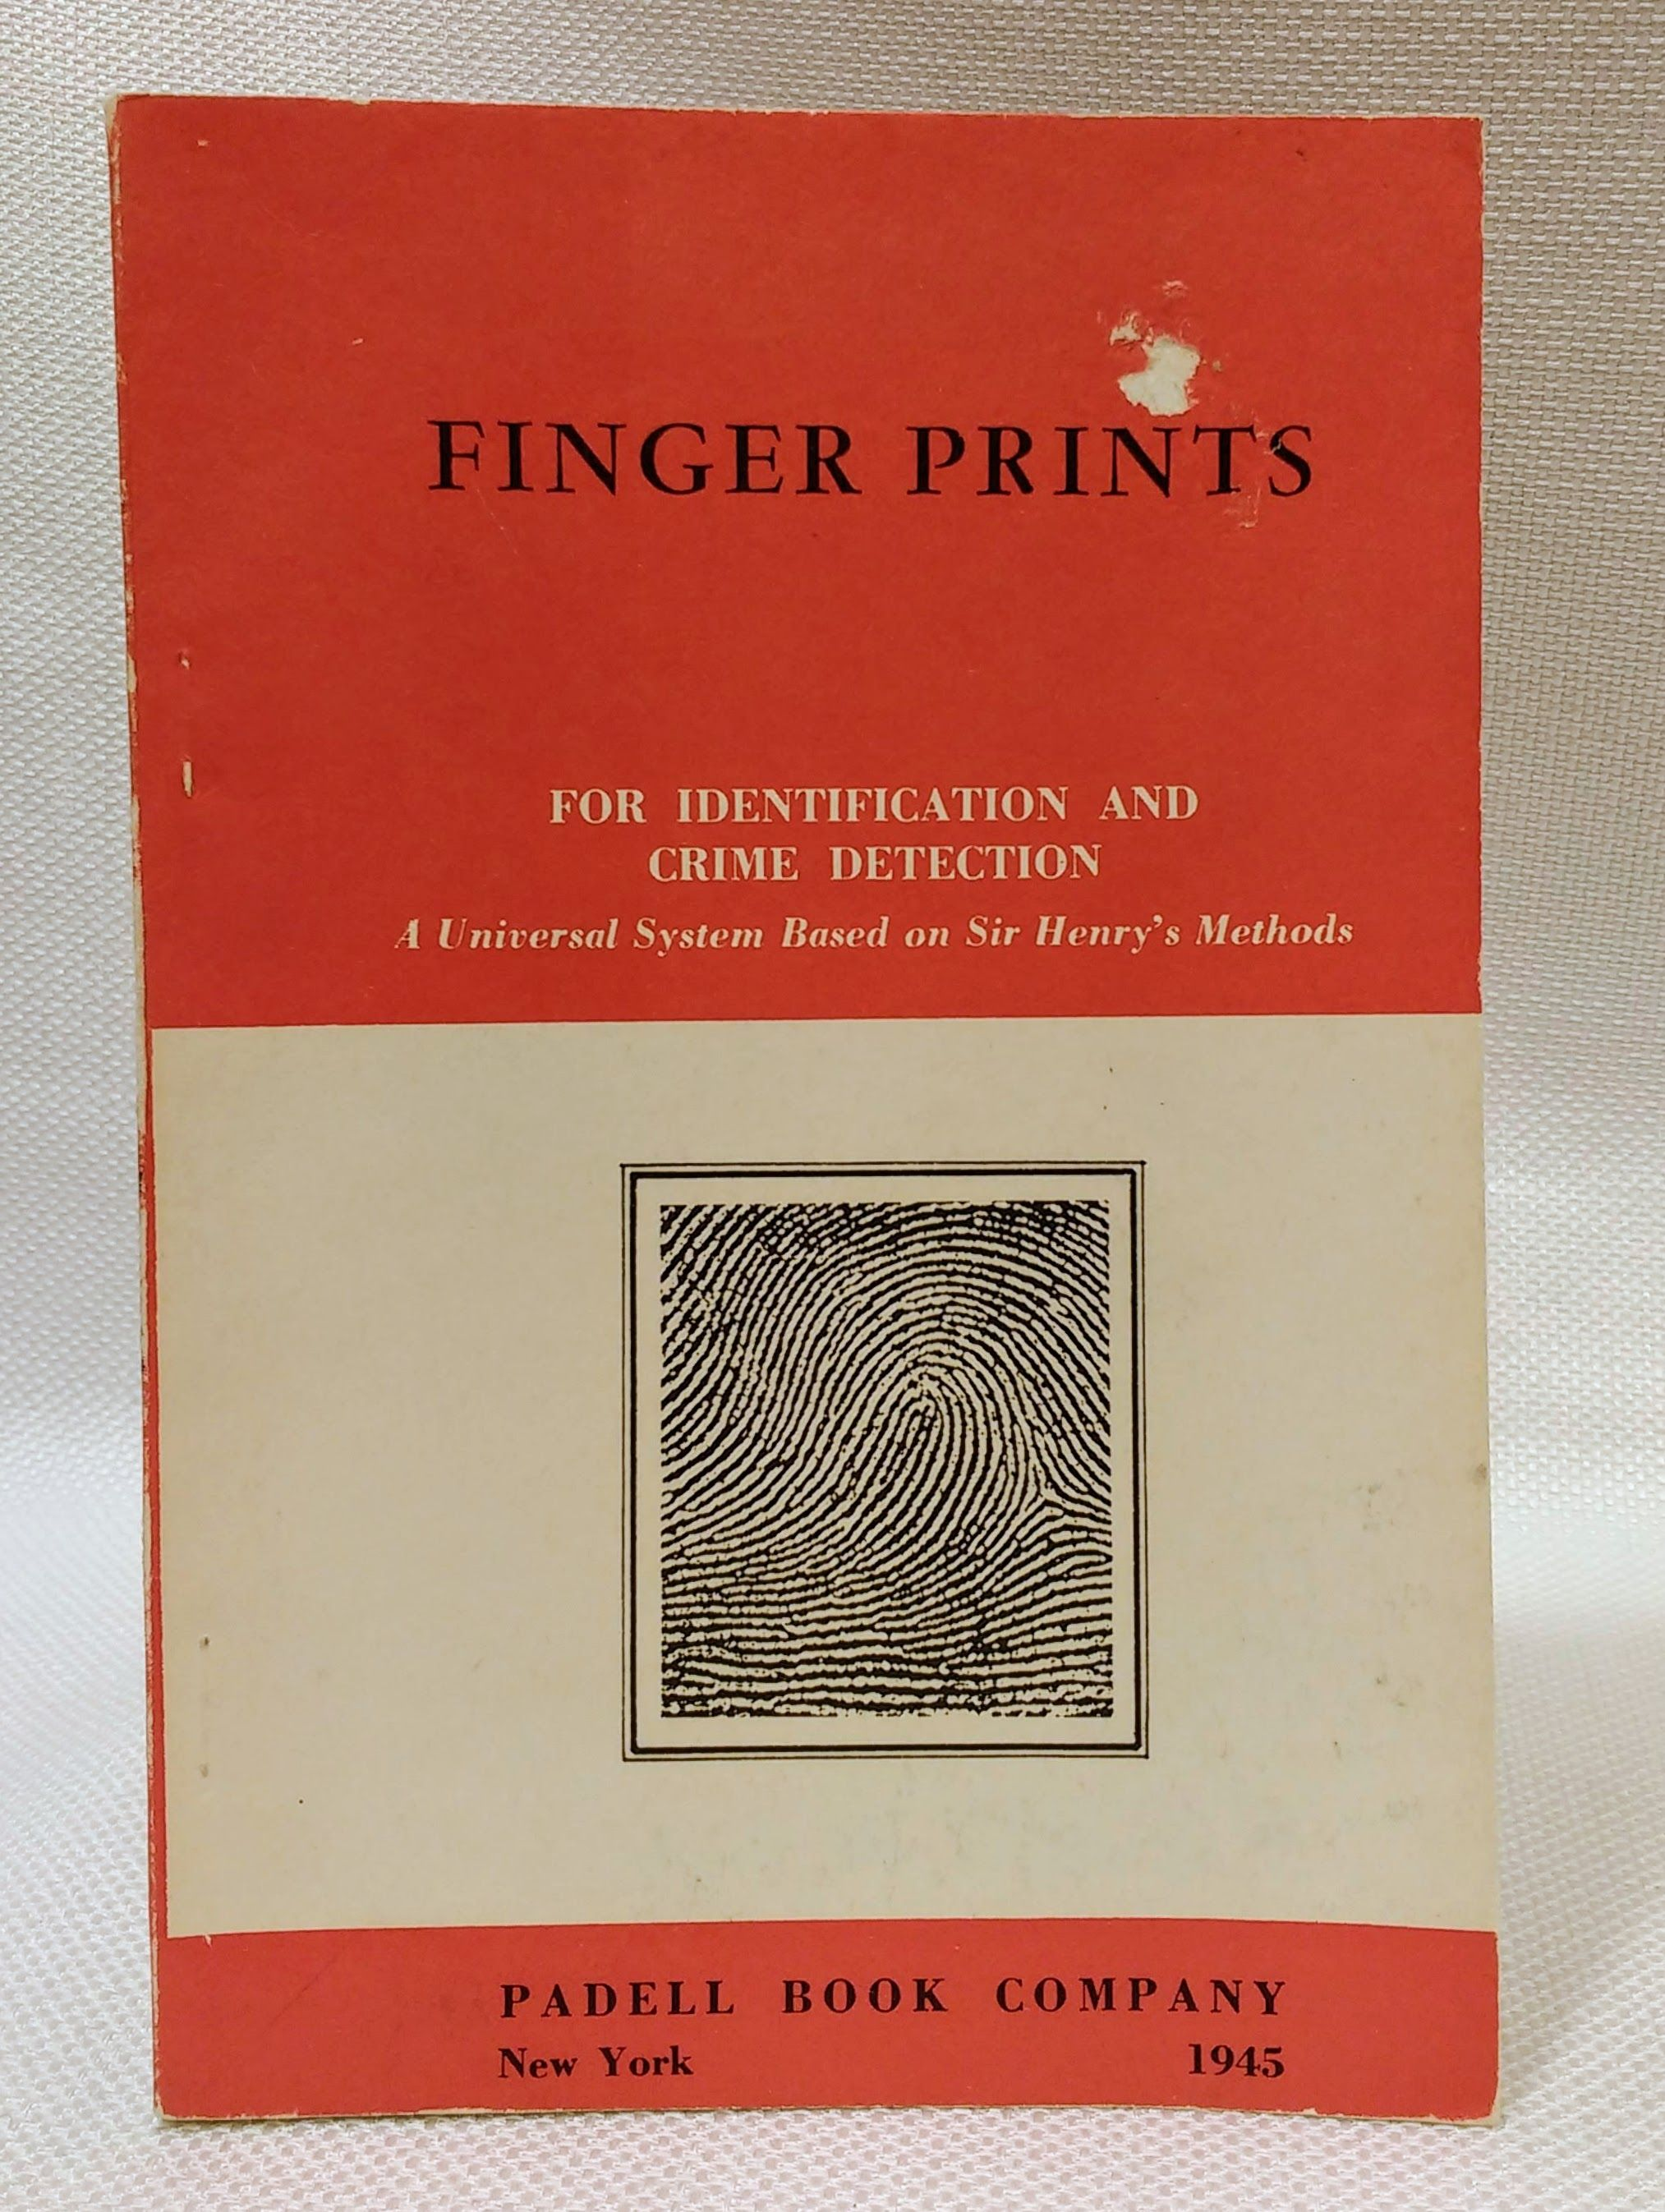 Finger Prints: For Identification and Crime Detection. A Universal System Based on Sir Henry's Methods, Padell Book Company